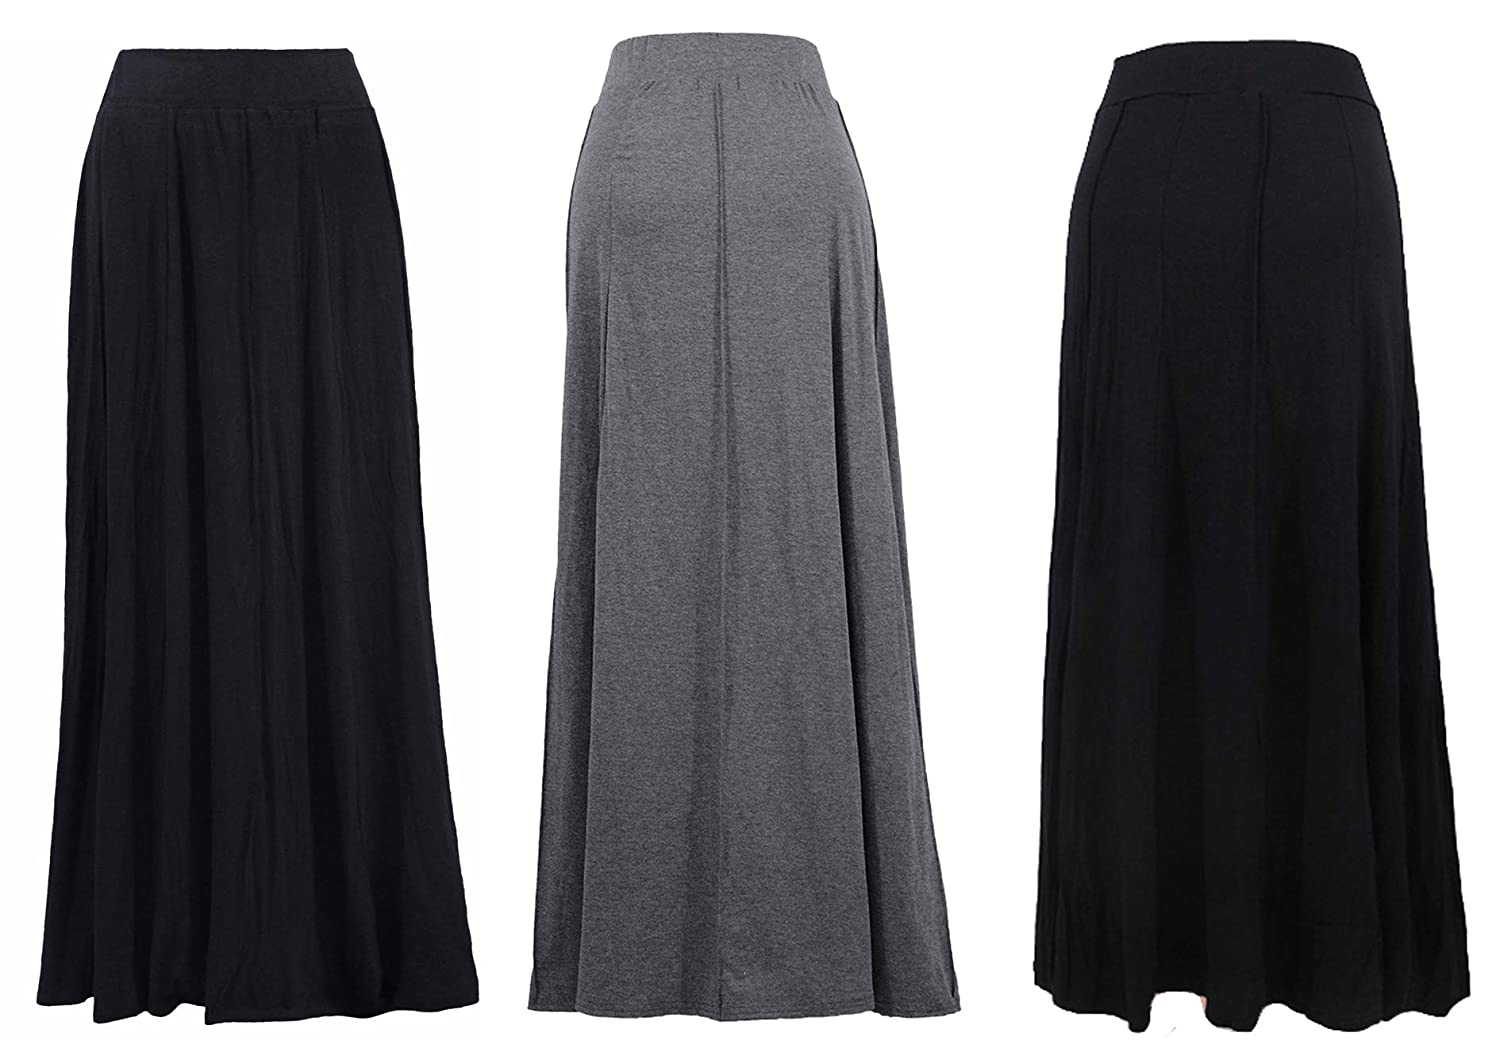 Abielmo Women Ladies Maxi Skirt Fully Lined Pull on Elasticated Waist 39-42 INCHES Long Ankle Length Size 10-24 justfound4u